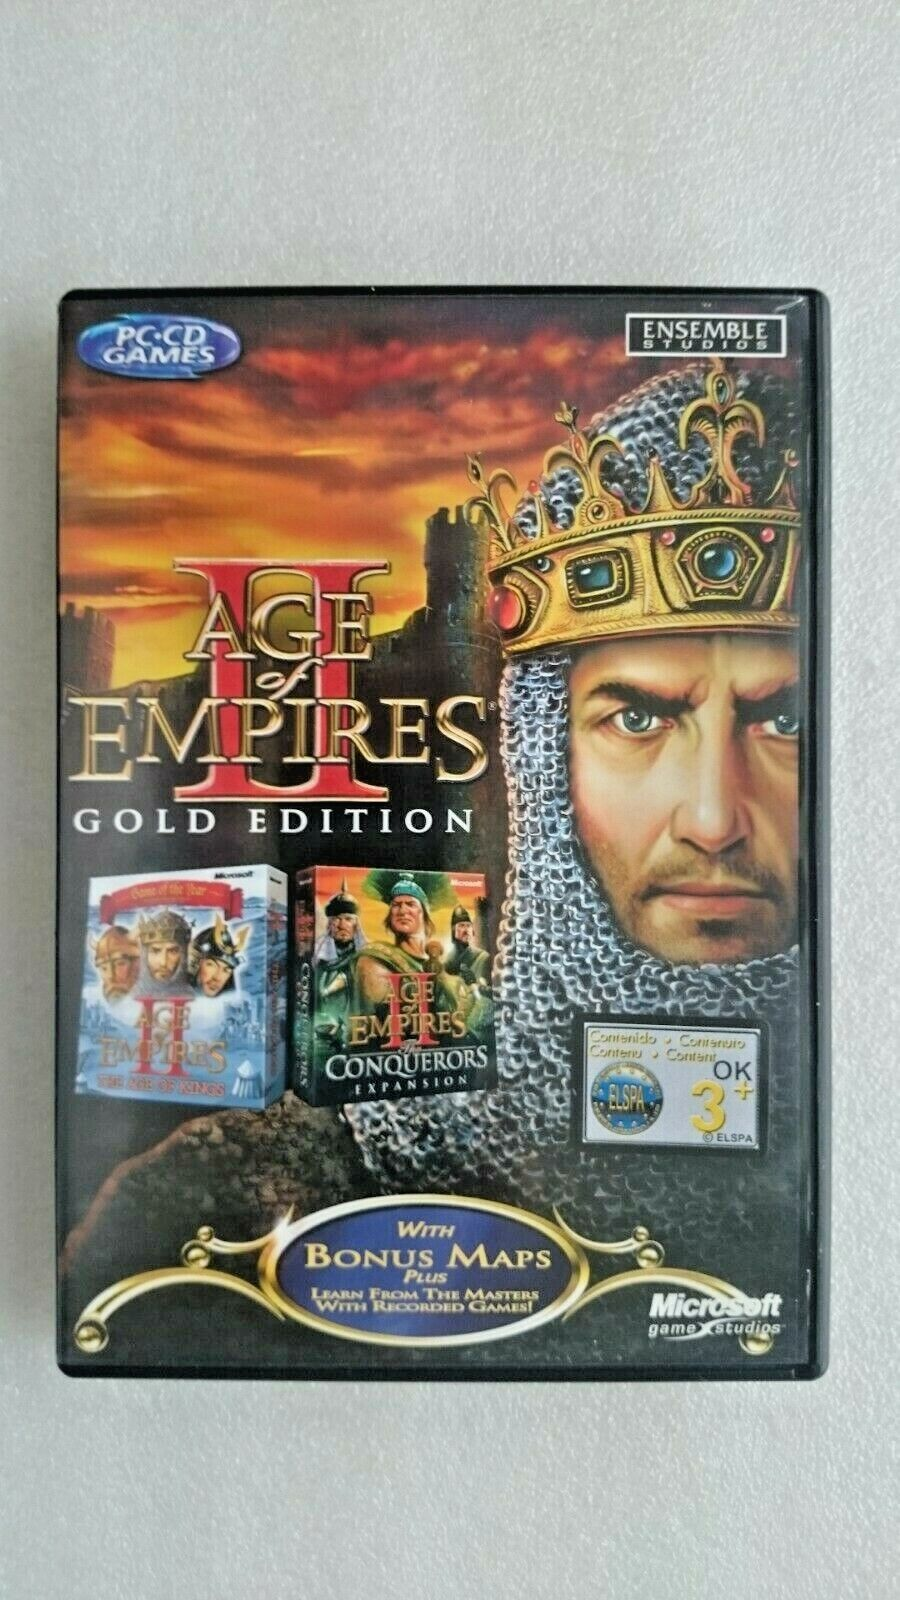 Age of Empires Gold Edition 2 (PC, Windows 2002)